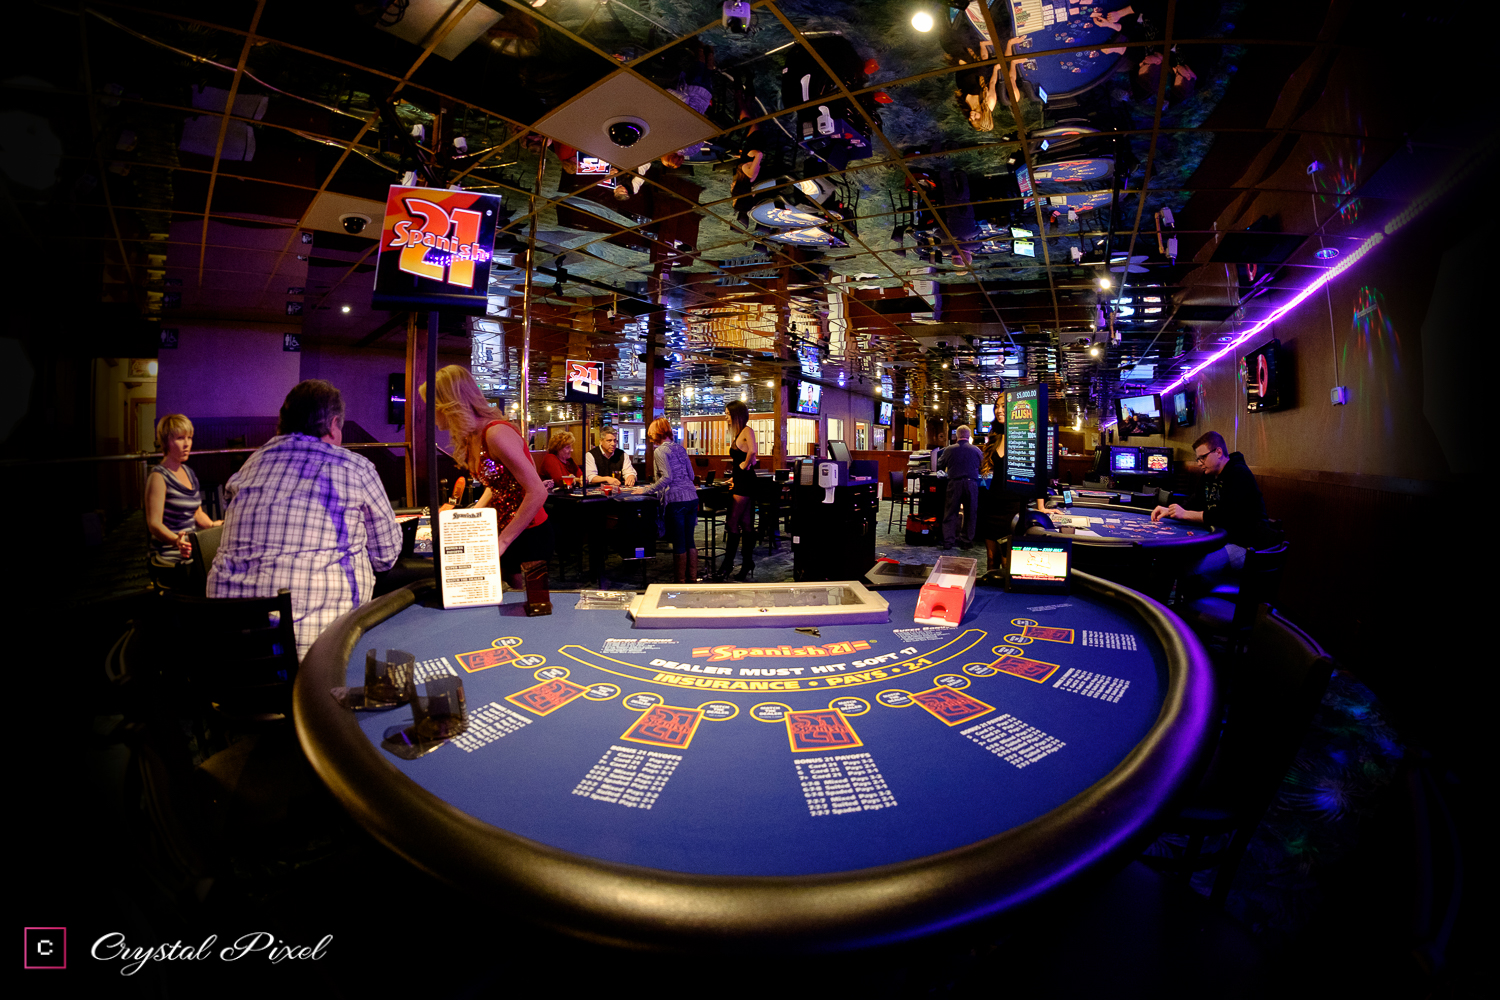 Susuamish clearwater casino cape canaveral casino